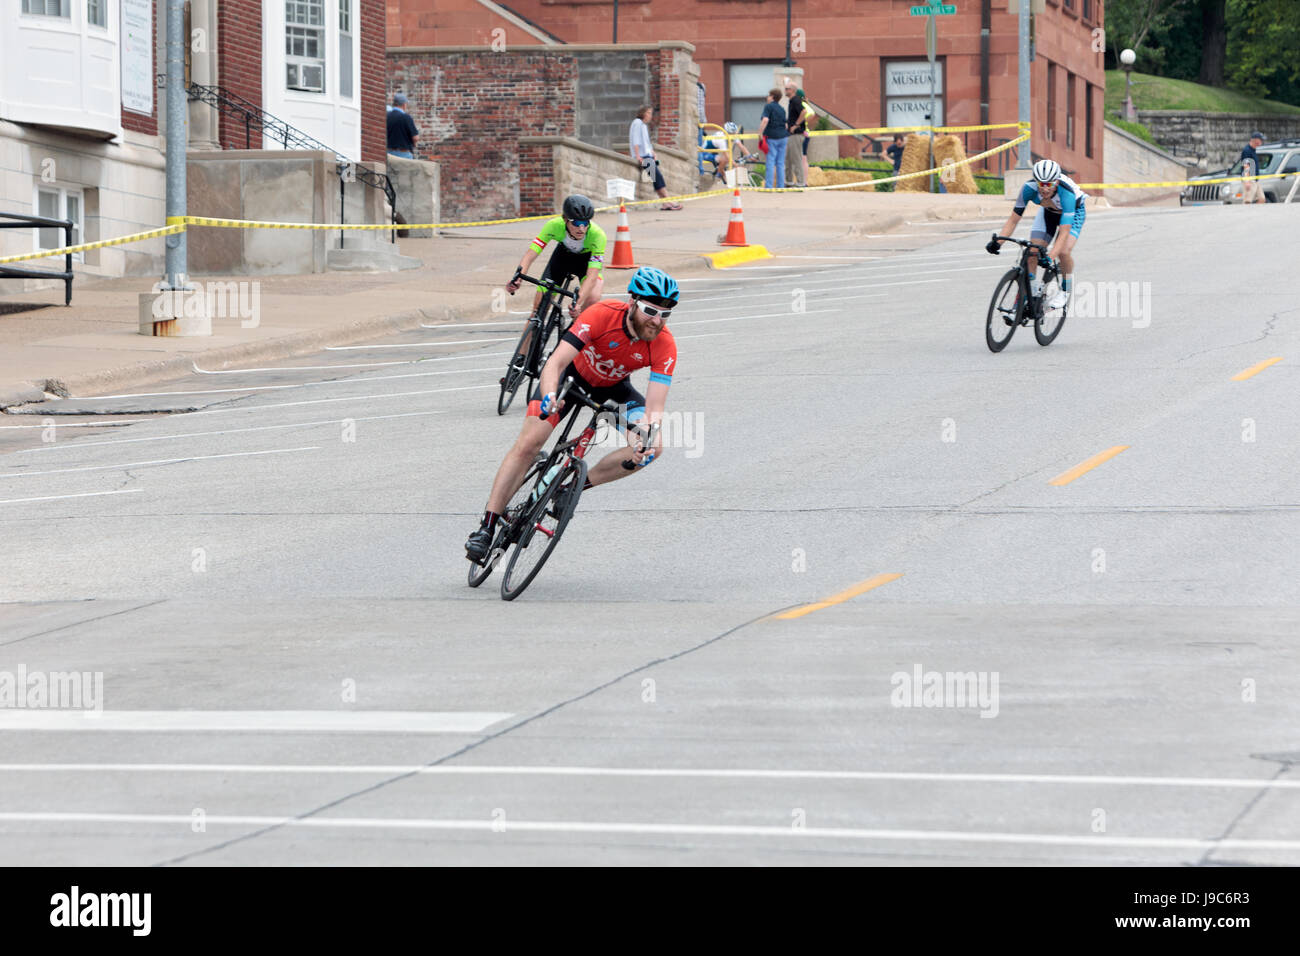 Men's category 4 race at the 2017 Snake Alley Criterium in Burlington, Iowa. Stock Photo